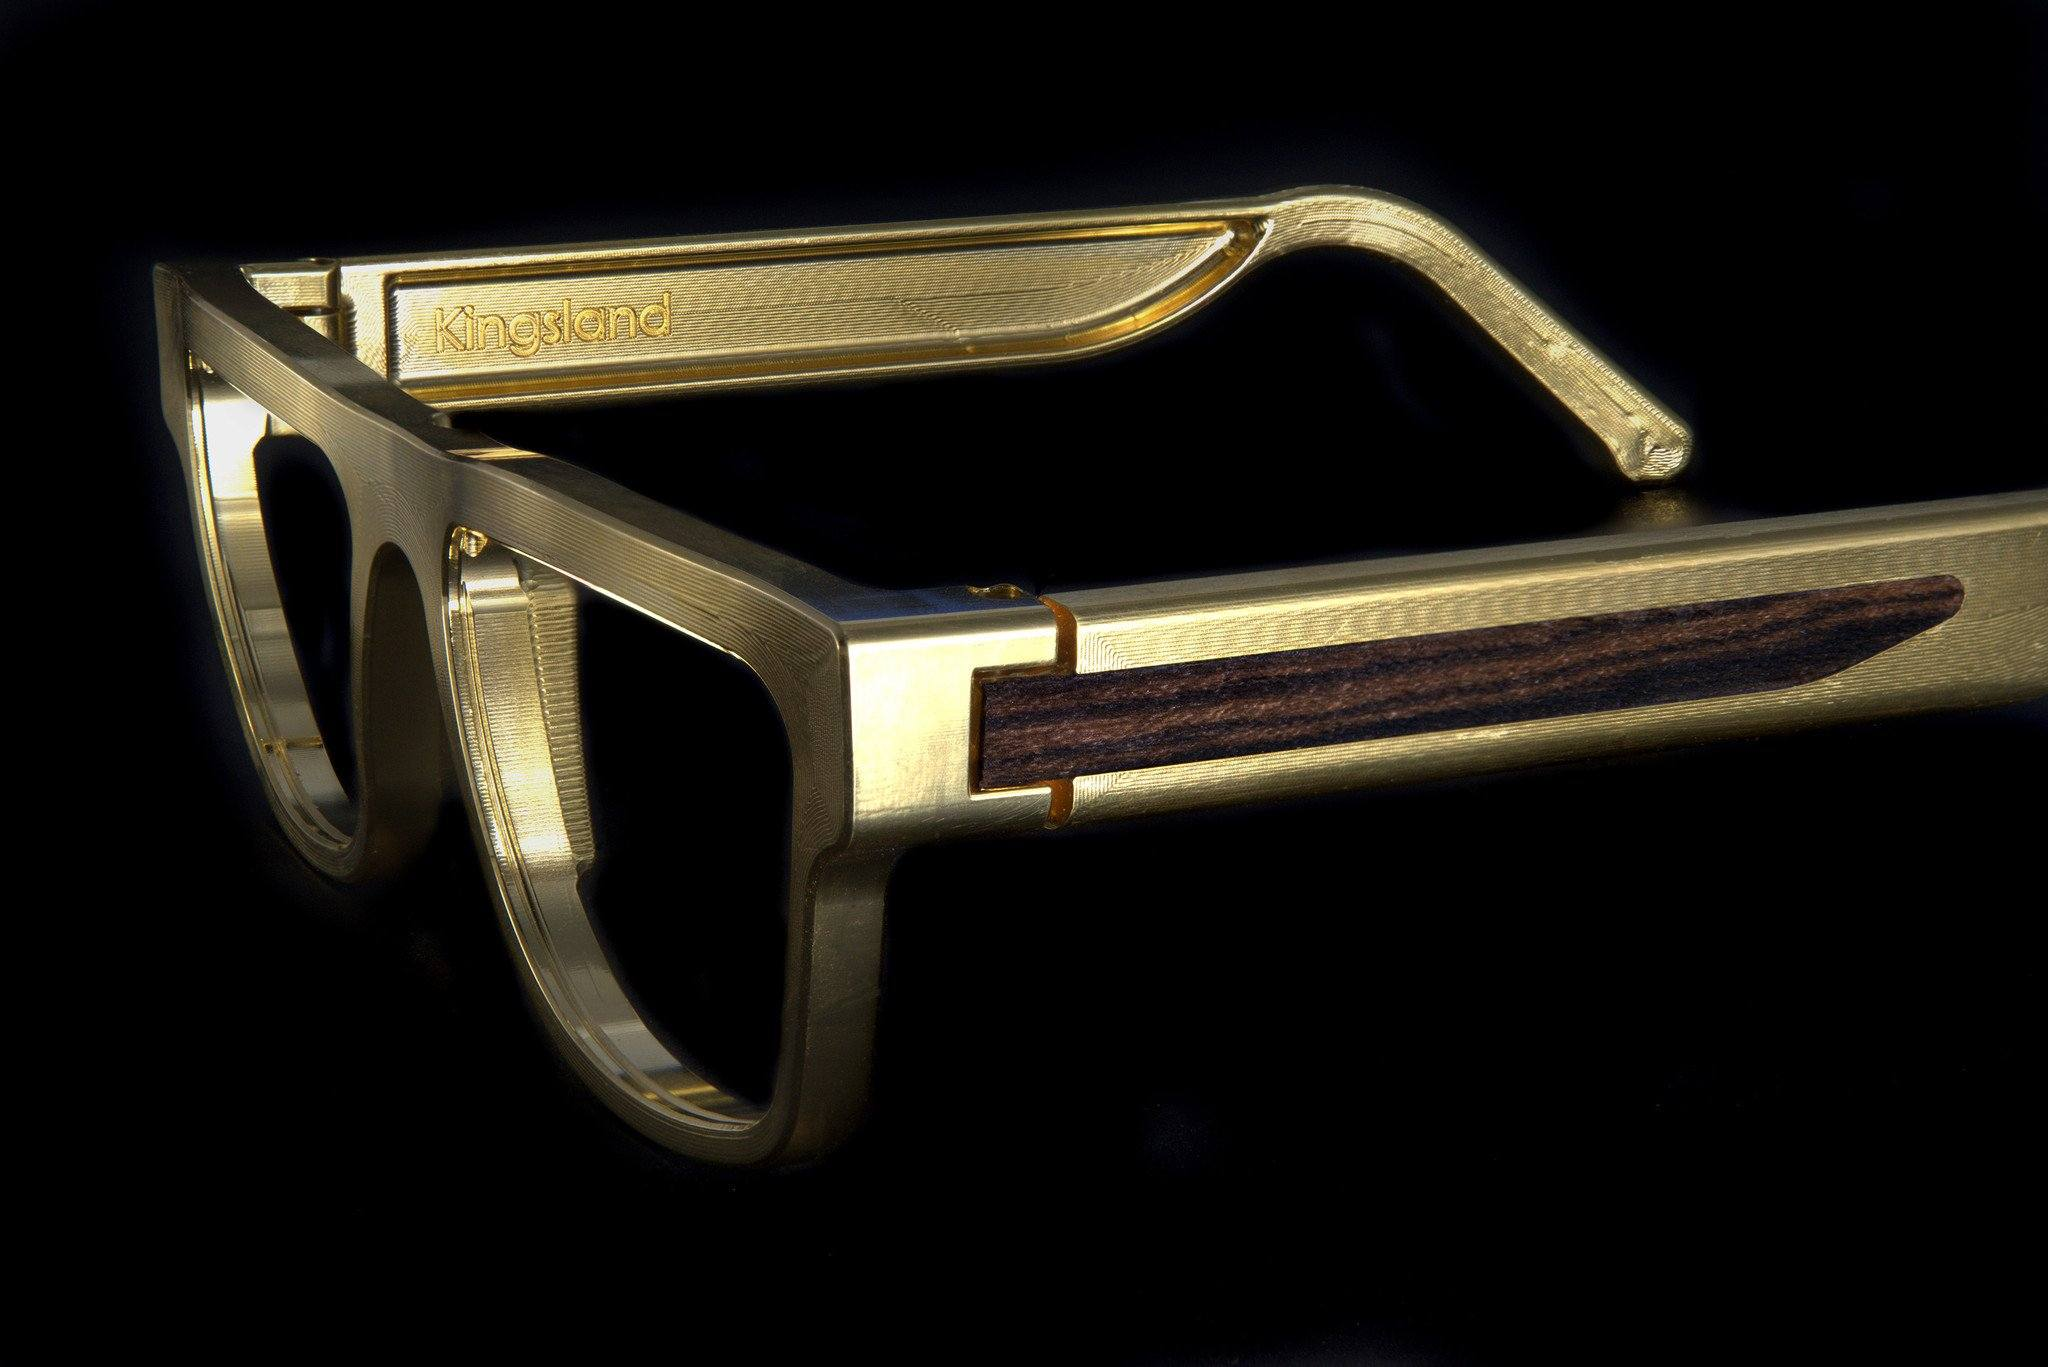 Kingsland Frame Gold with Hardwood Inlay